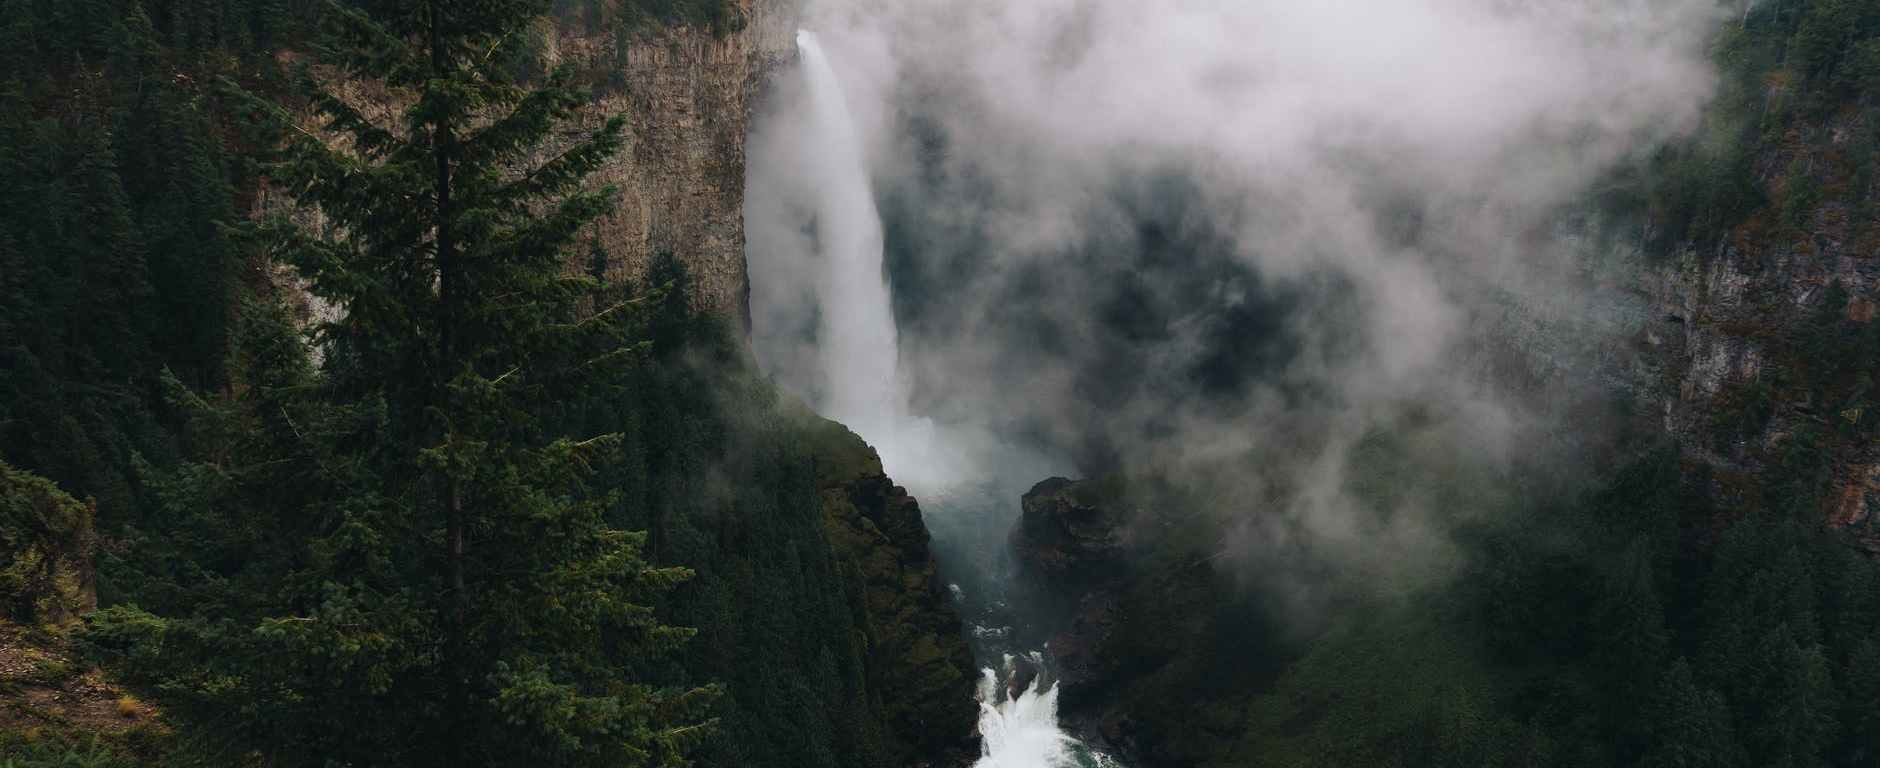 waterfall in mountainous terrain with evergreen forest against cloudy sky